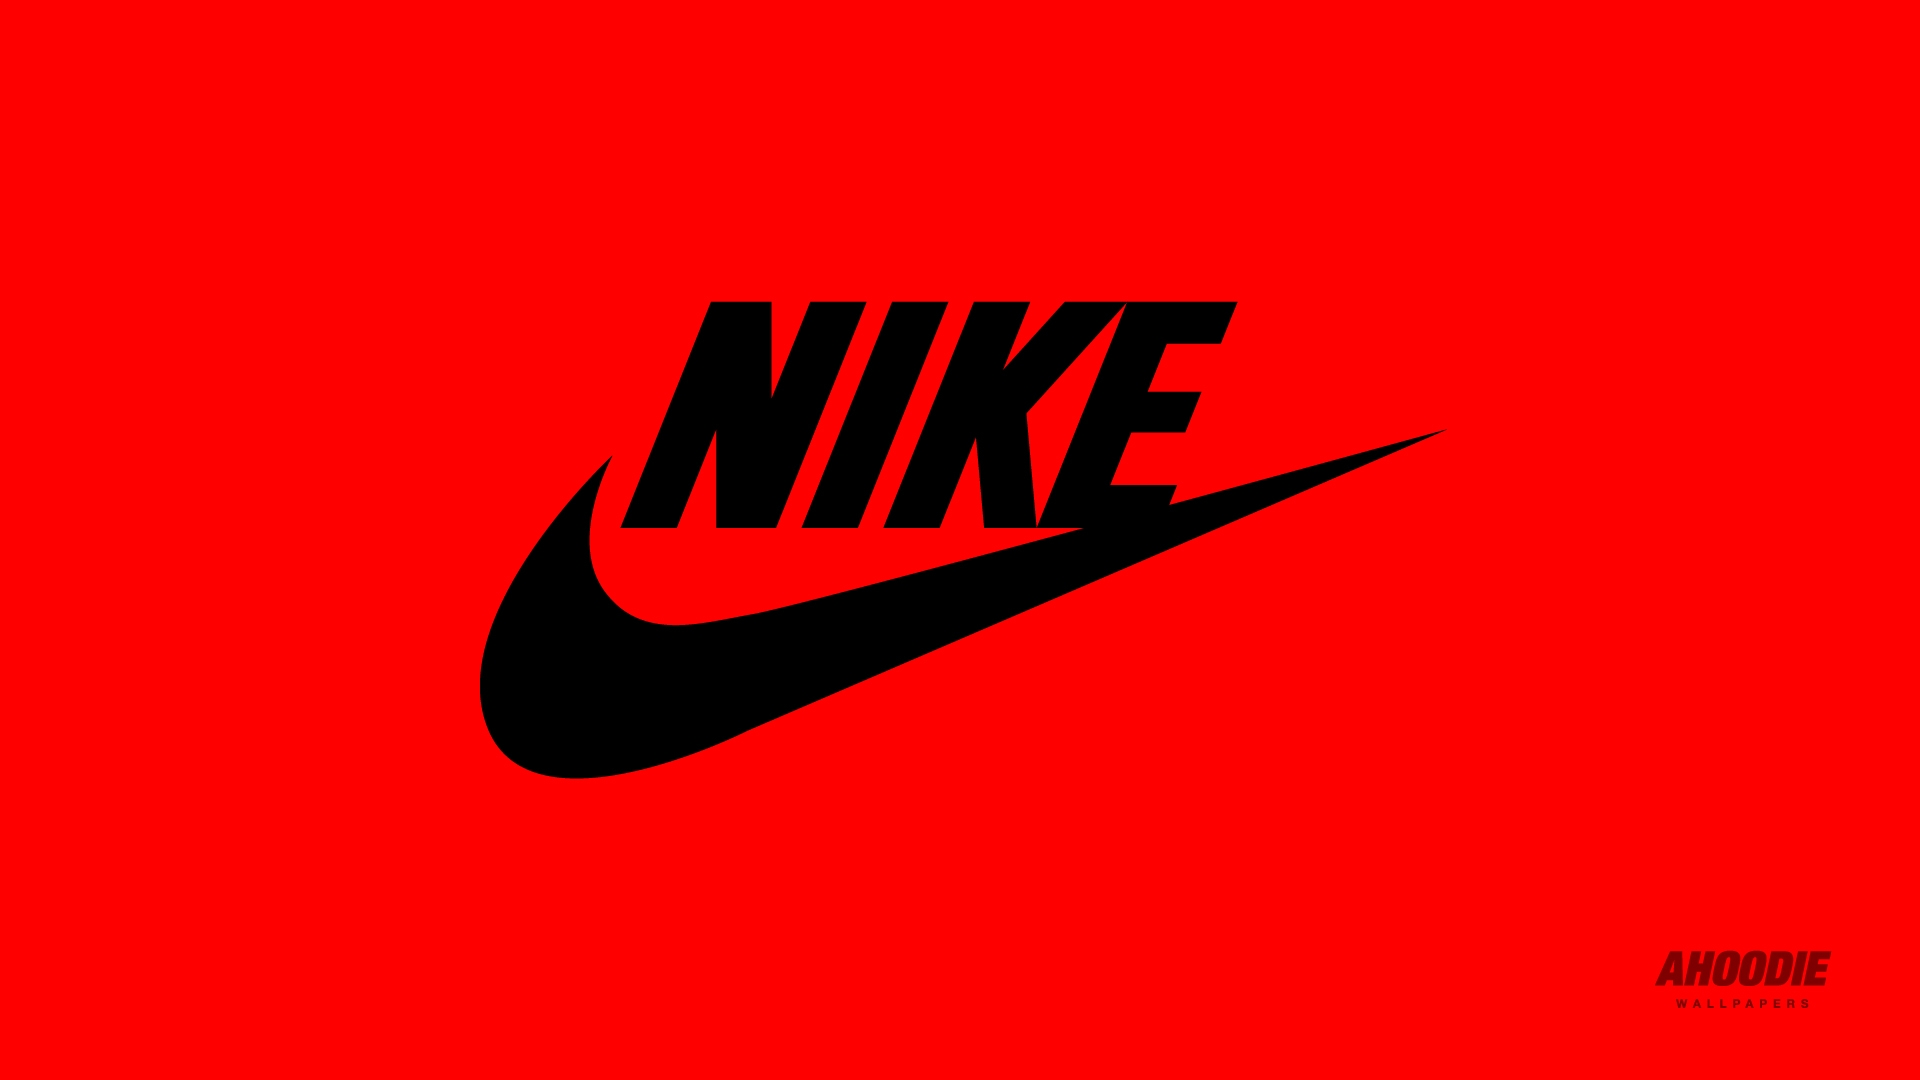 Nike wallpaper hd 1080p wallpapersafari high definition nike wallpaper pc android iphone and ipad wallpapers 1920x1080 voltagebd Gallery